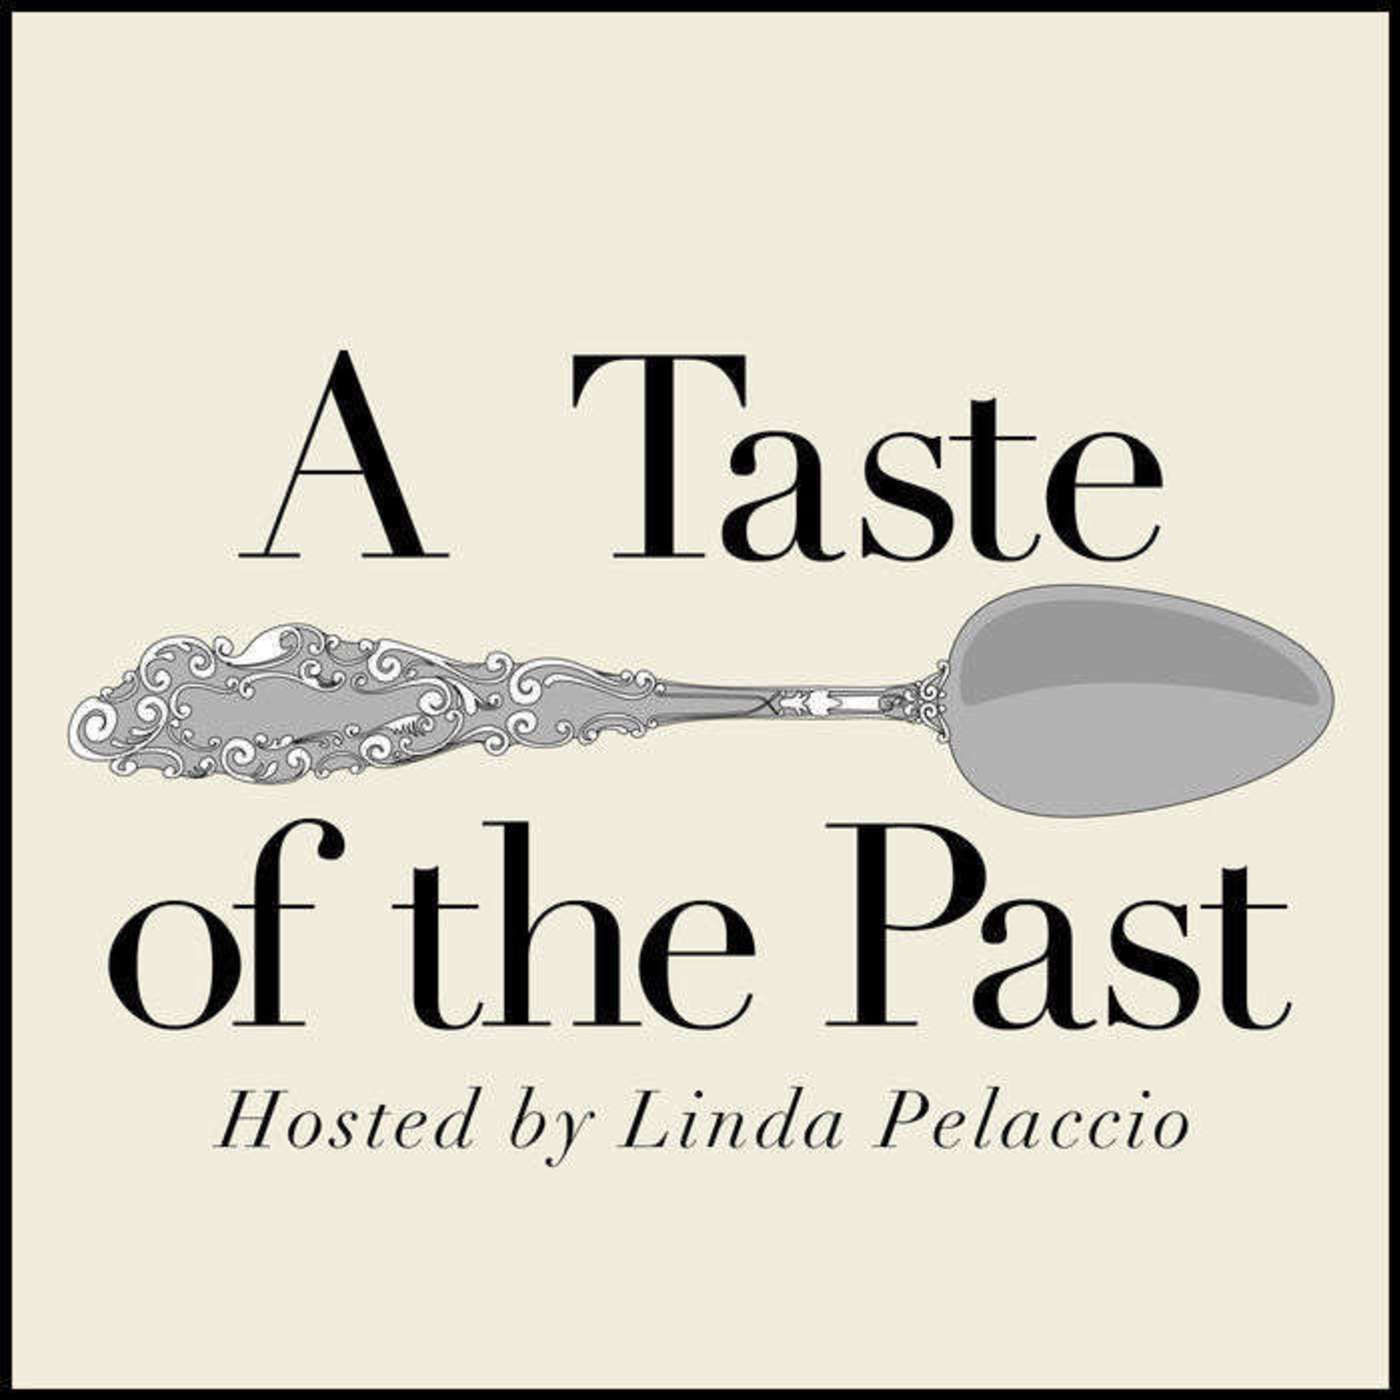 Episode 223: Chicago: A Food Biography